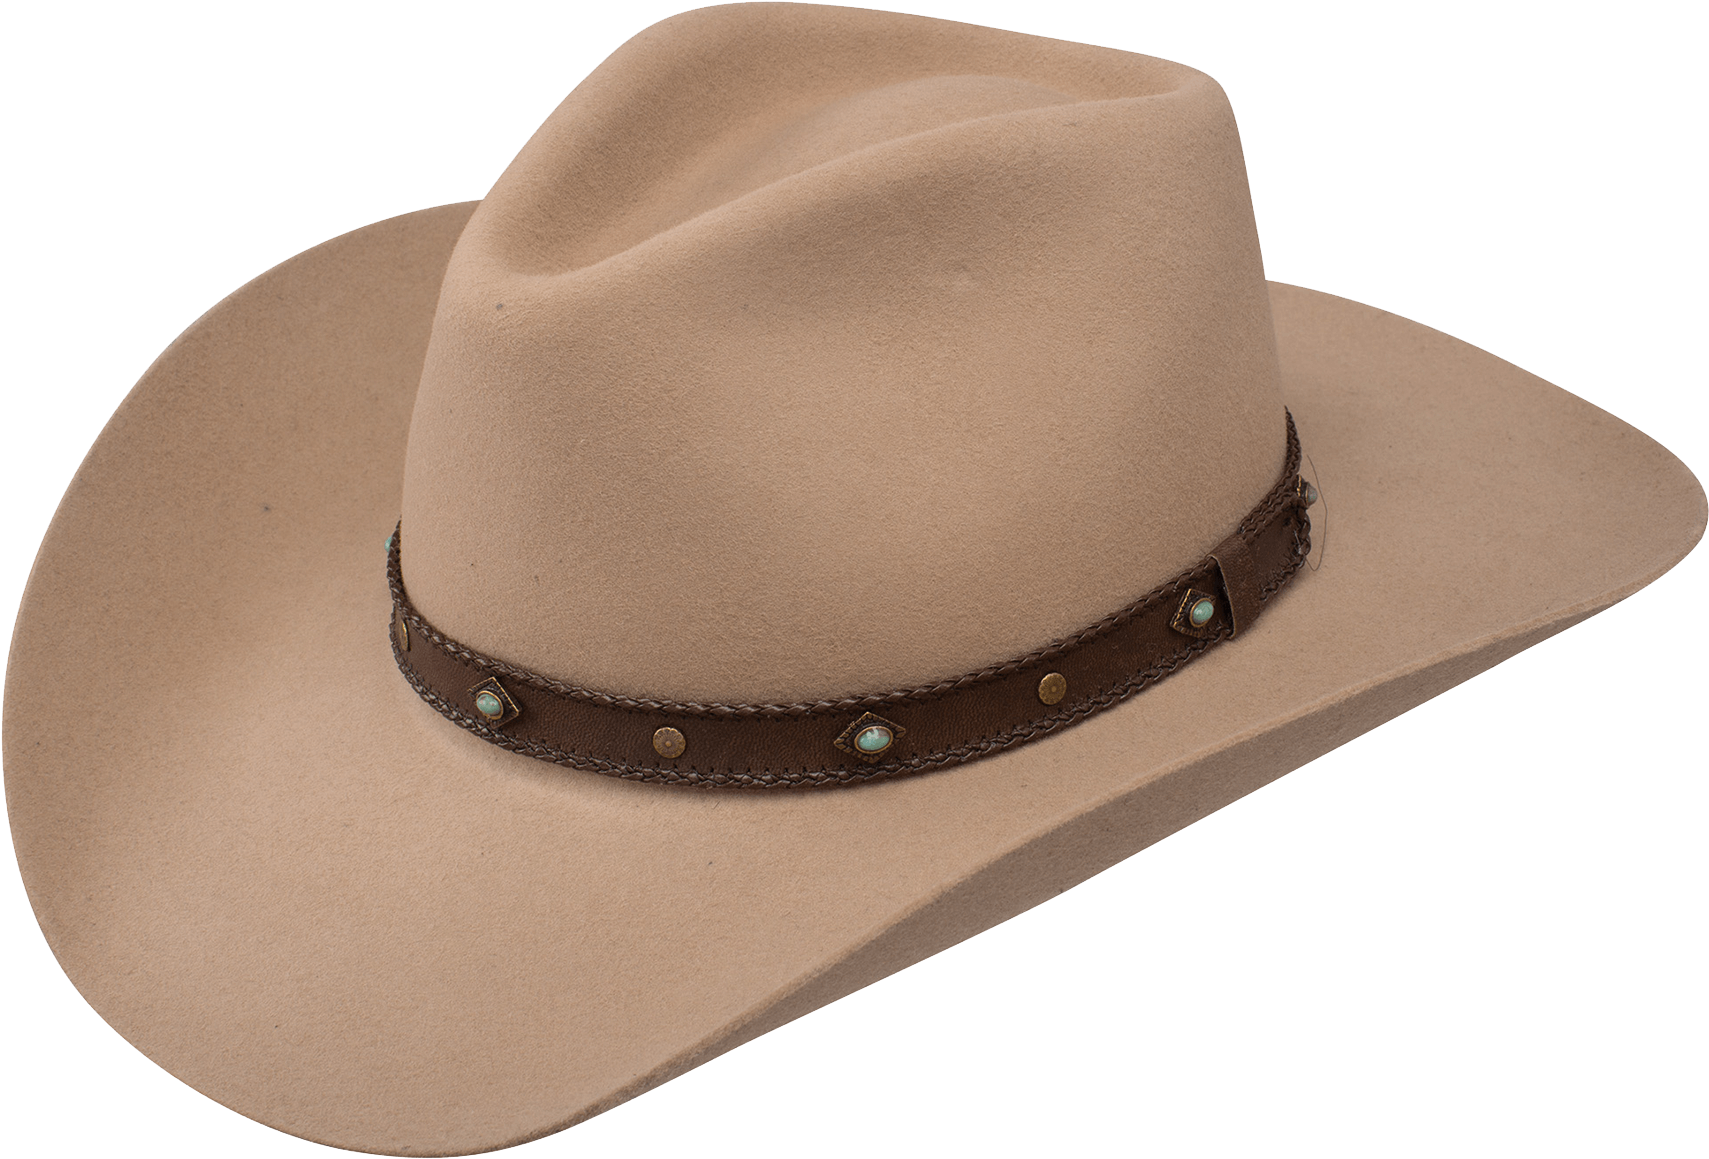 Download Stetson Sunset Ride Buffalo Western Hat Png Stetson PNG ... 3413b7c4dc1